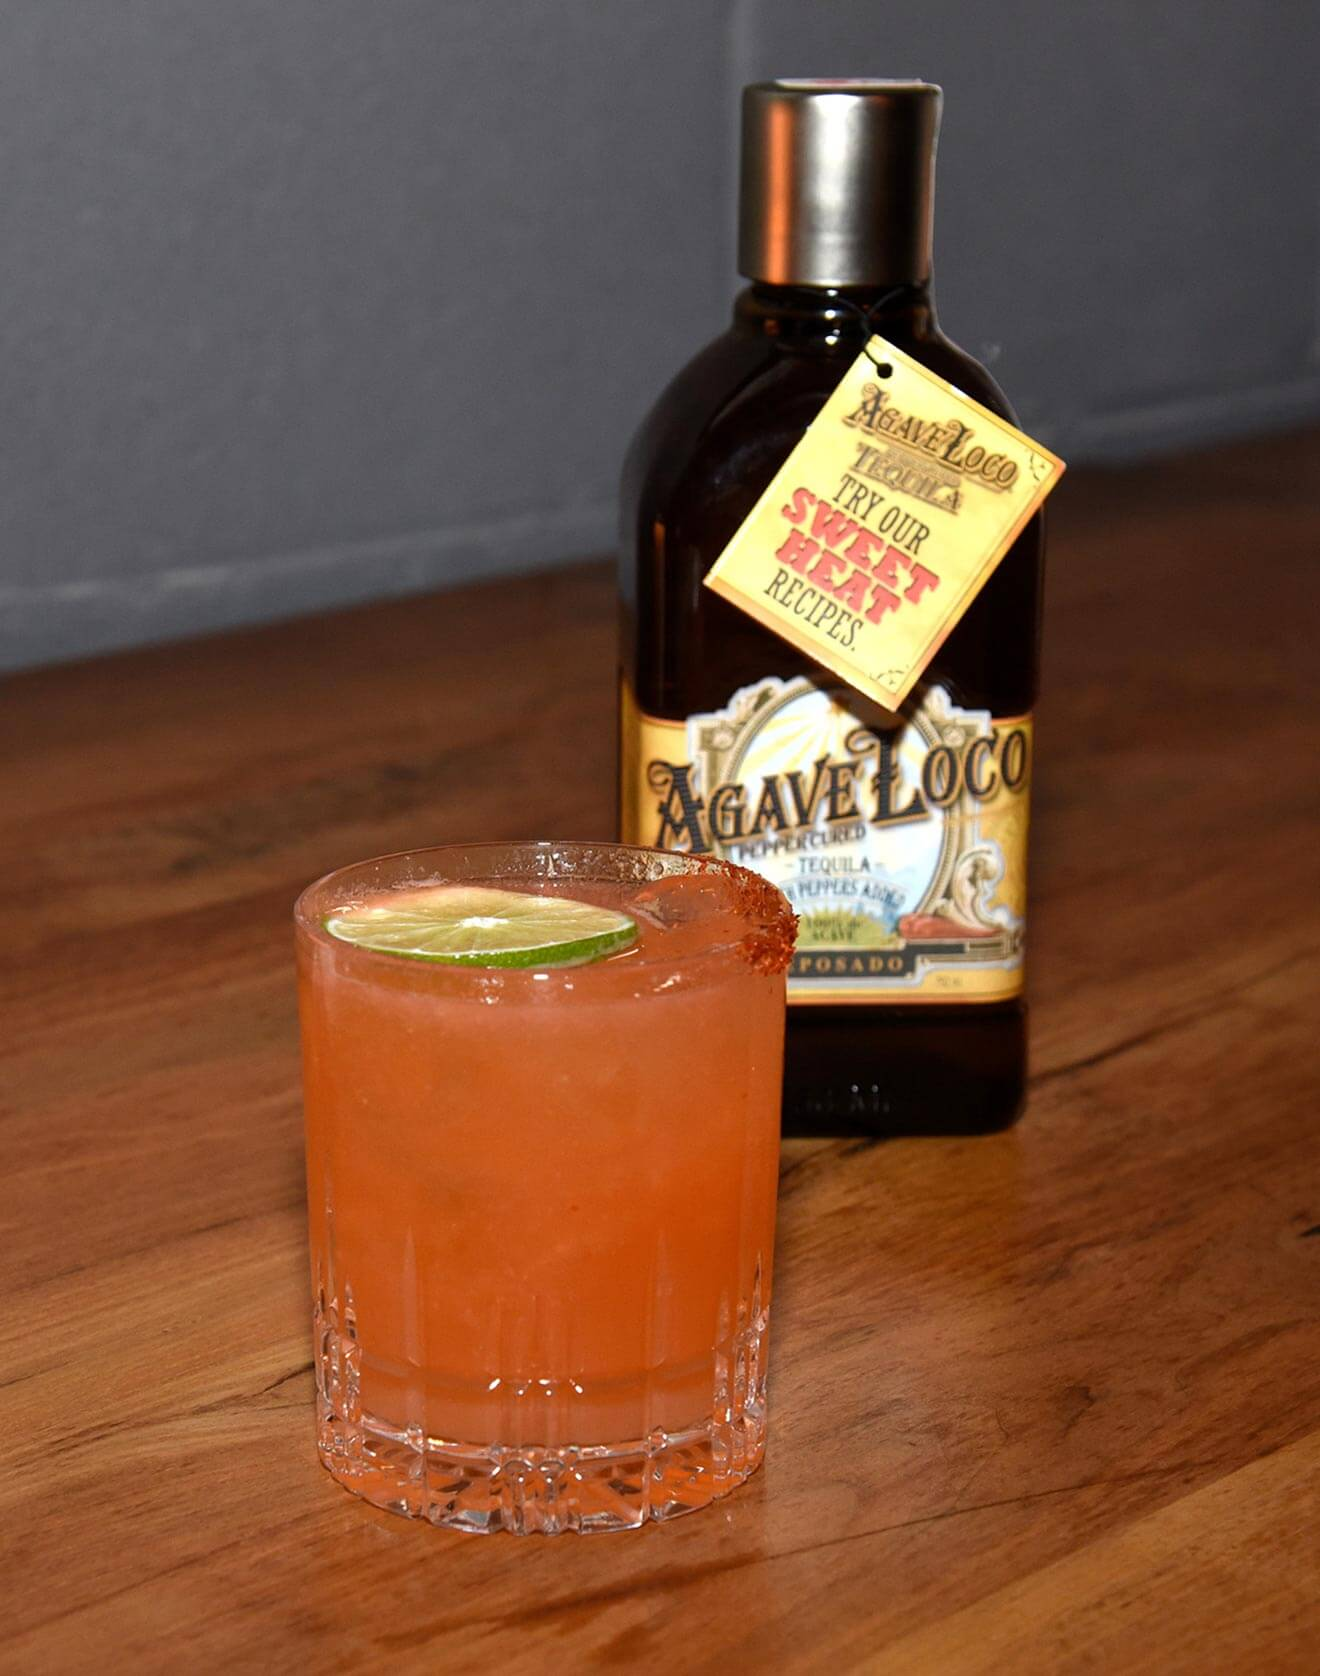 Spicy Agave Loco Paloma cocktail with bottle